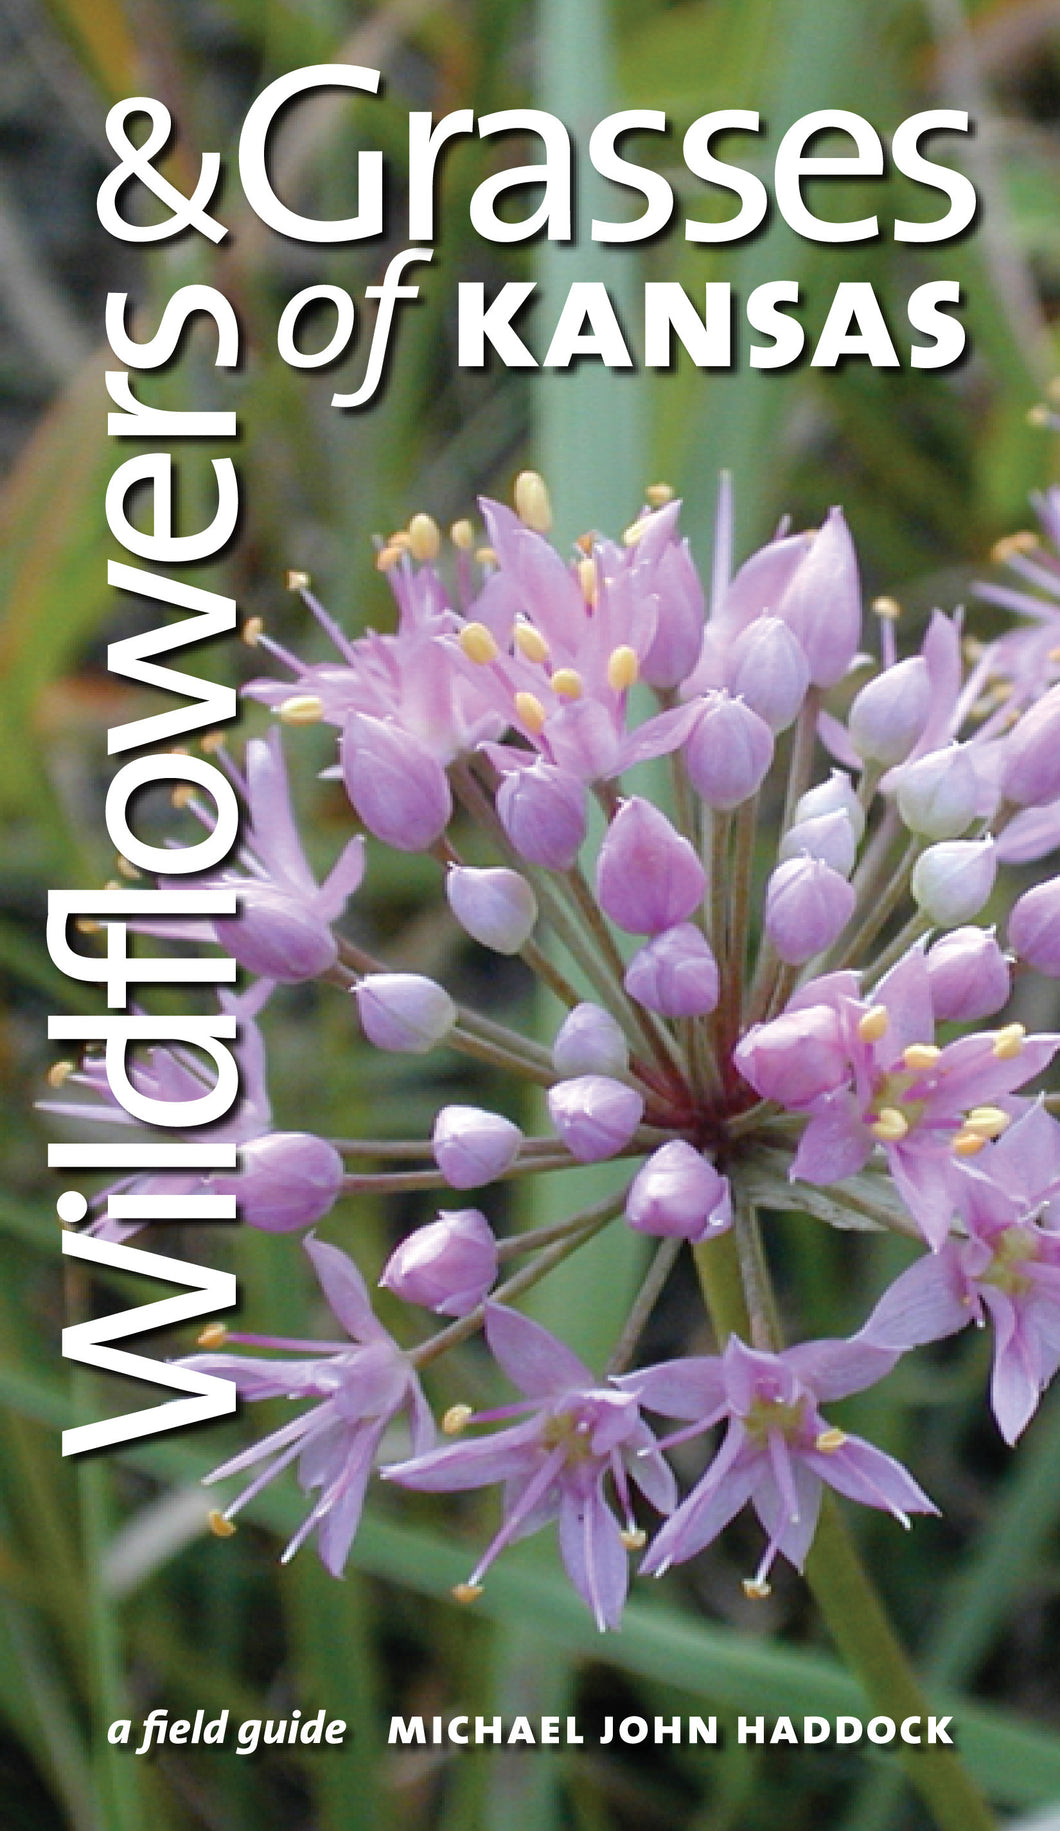 Wildflowers & Grasses of Kansas  -  A Field Guide  Book